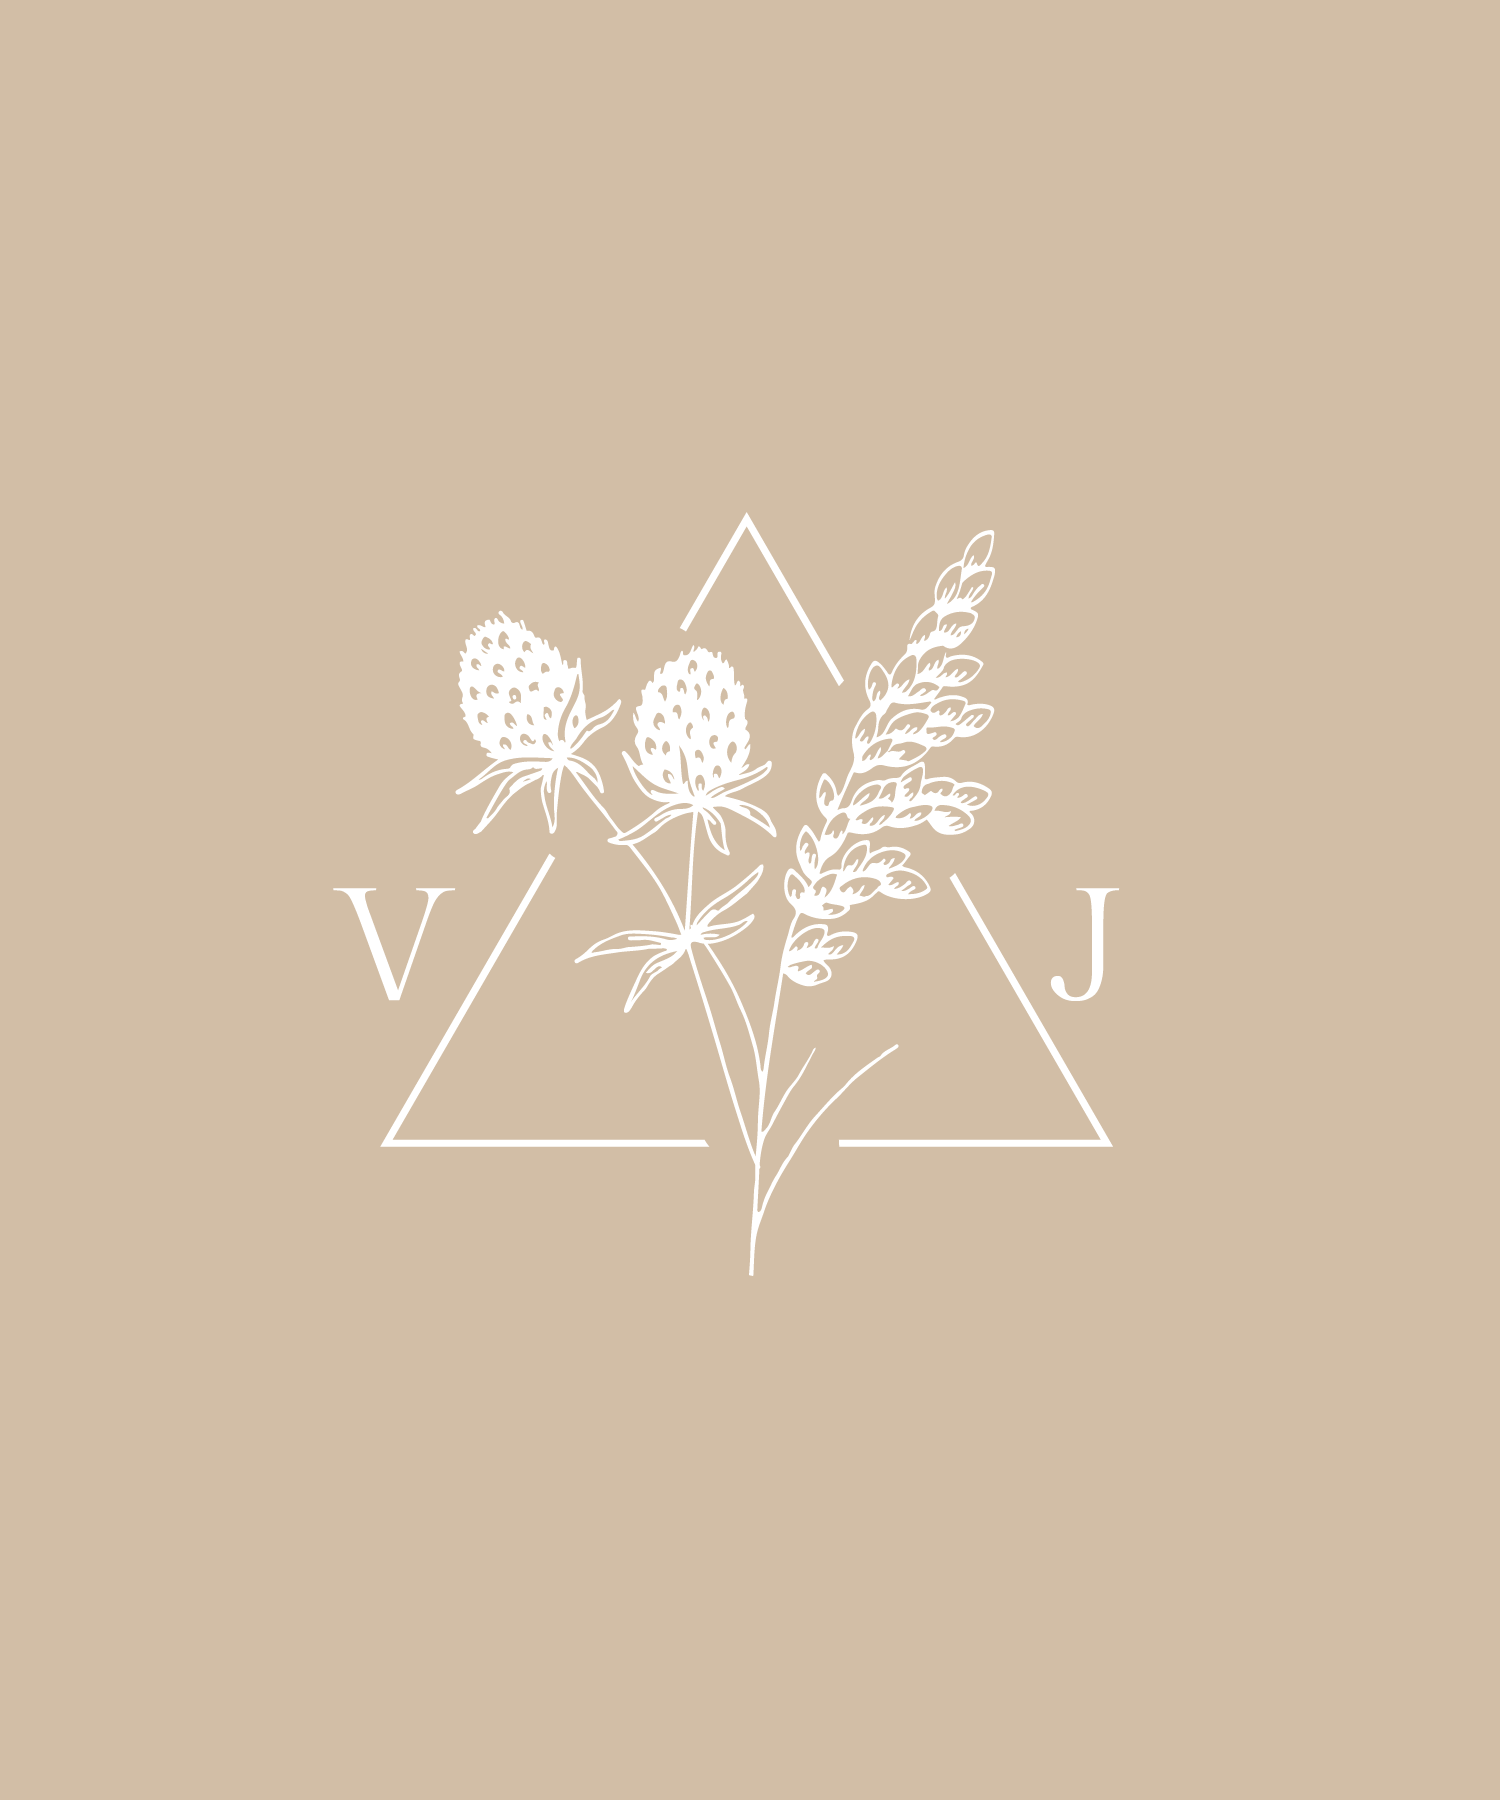 Vanessa Jaclyn Photography Logo & Branding Design by Bea & Bloom Creative Design Studio